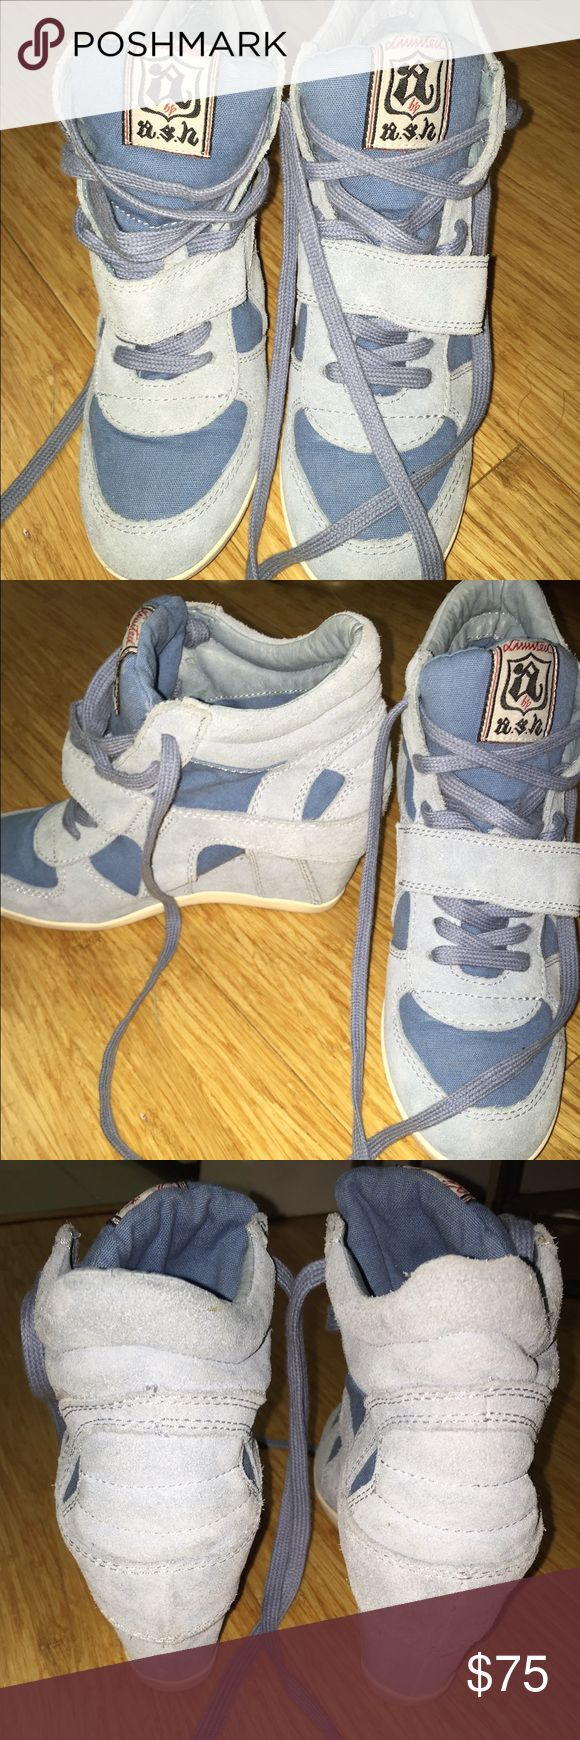 ASH Bowie style WEDGE SNEAKER- size 8 Only worn a few times. In great condition. The most comfortable sneaker wedge. Ash Bowie sneaker wedge in Carolina baby blue. Size 38/ which equals a size 8 in US.  Perfect color for jeans. Wedge heel = 3inchs Ash Shoes Sneakers